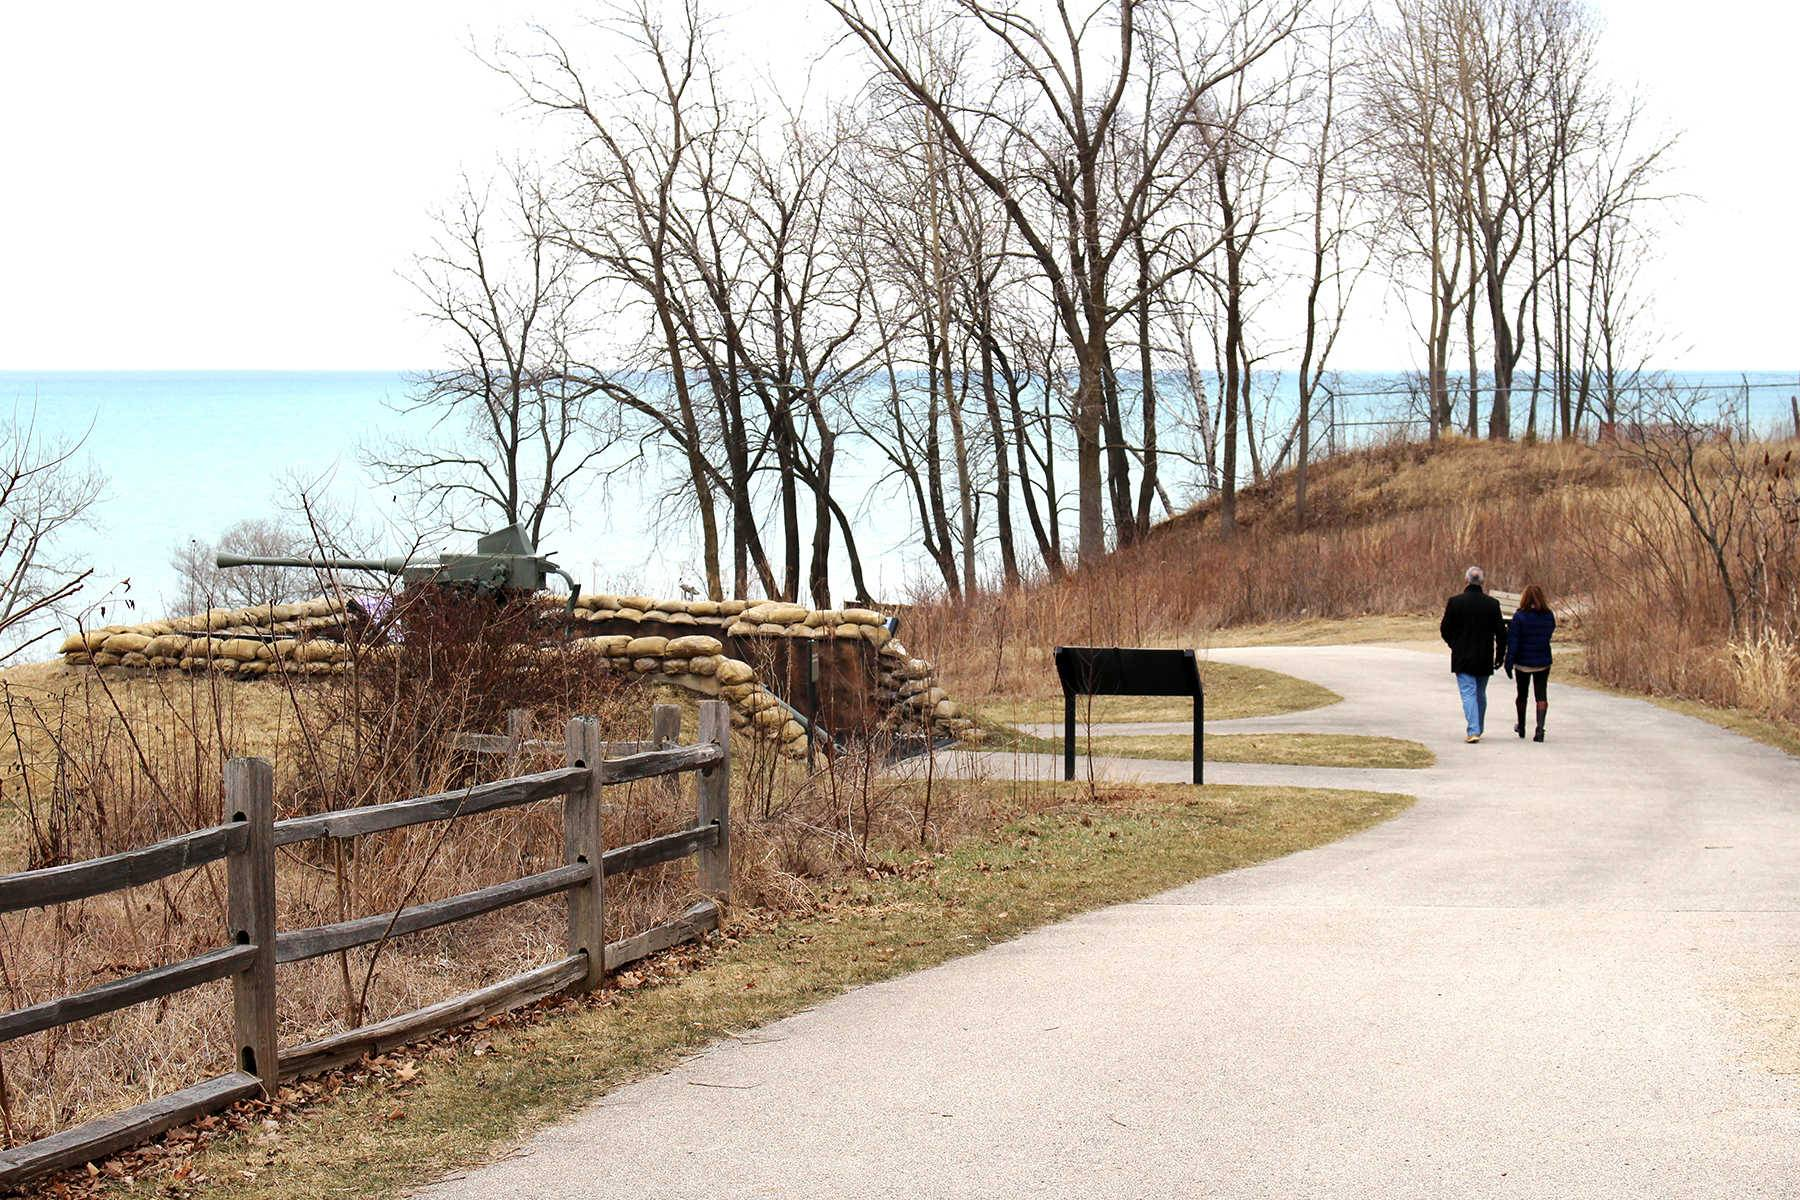 Fort Sheridan preserve concept plans open to public input, getting criticism